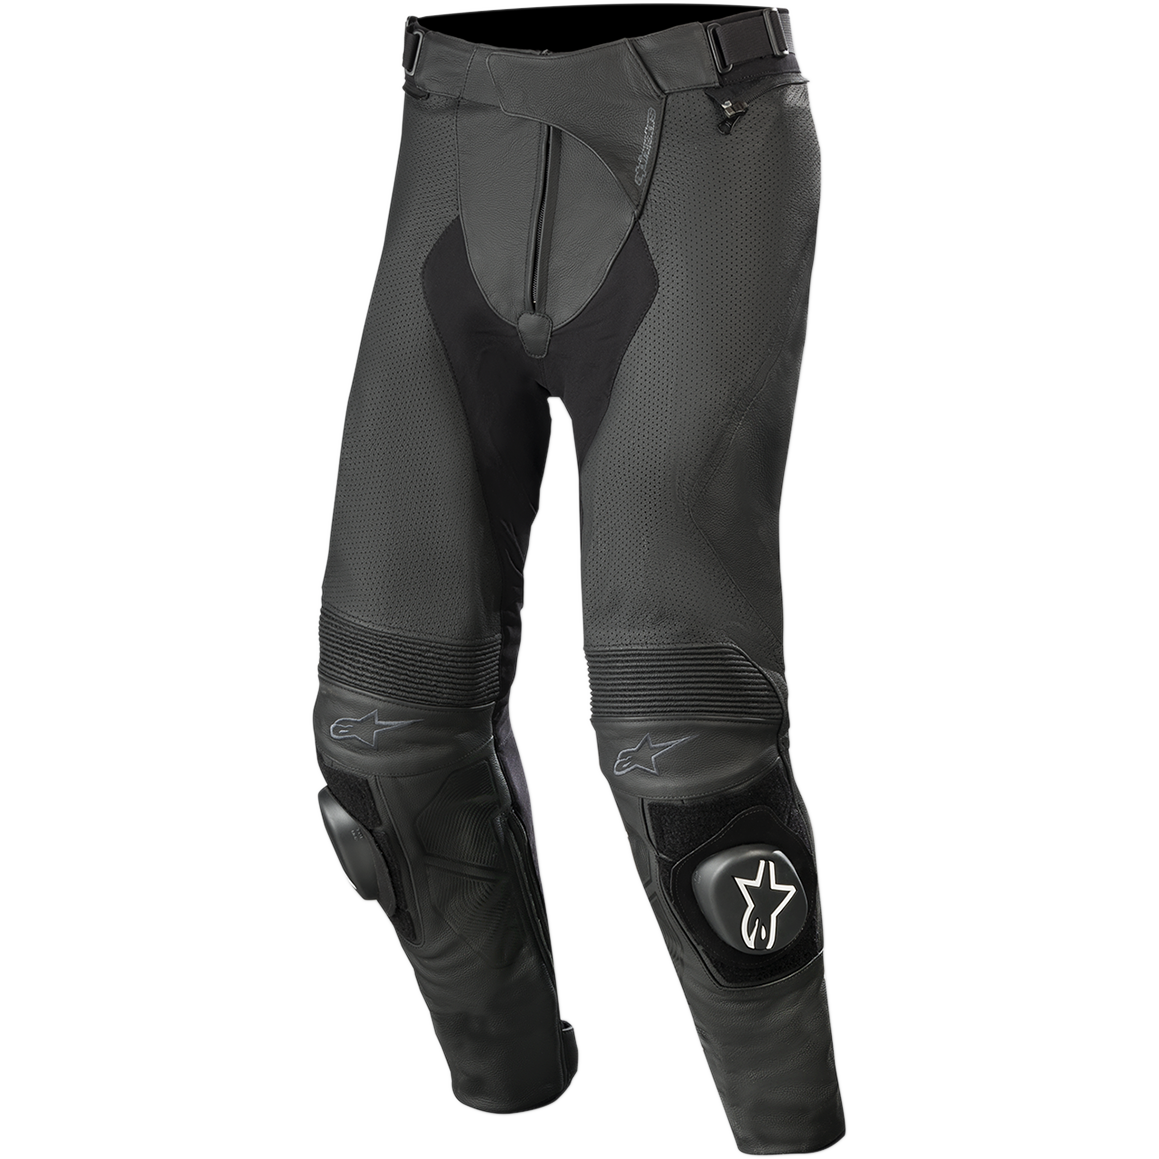 Missile V2 Airflow Pants — Short